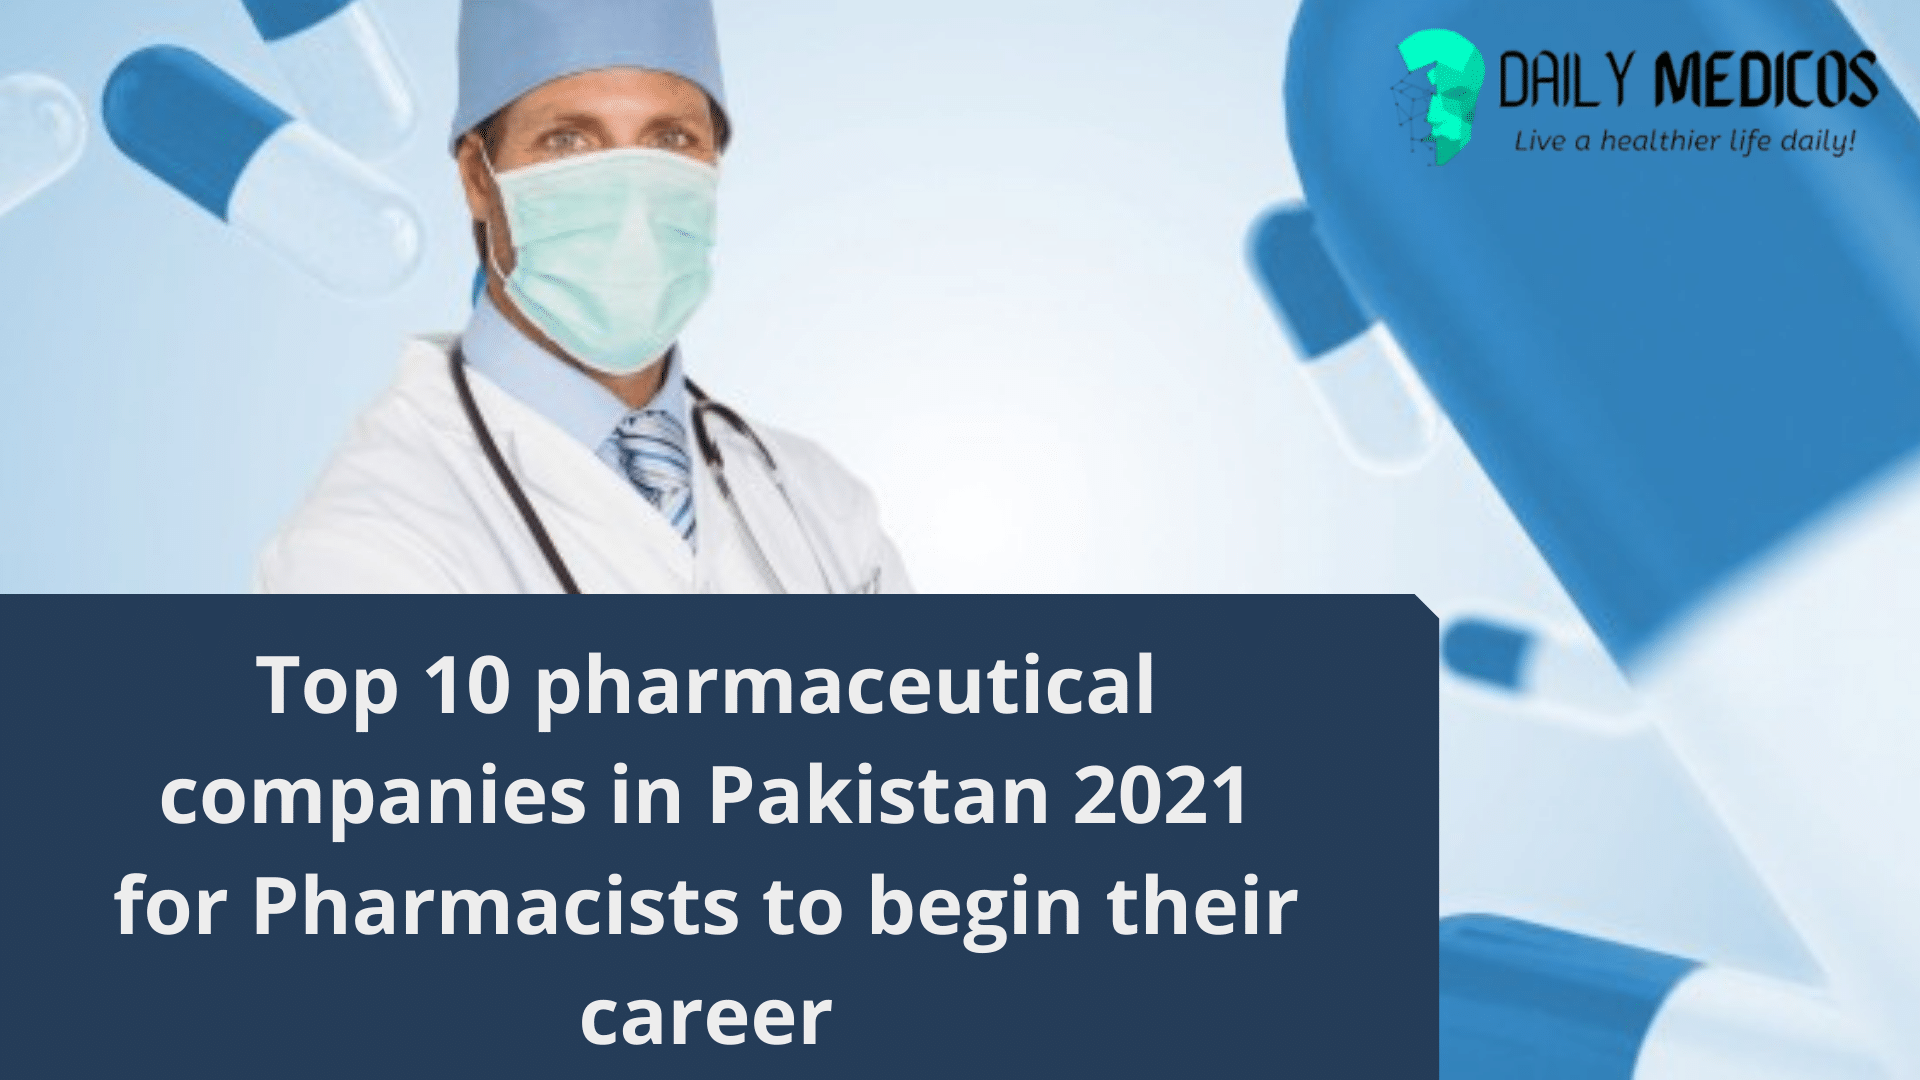 Top 10 Pharmaceutical Companies in Pakistan 2021 for Pharmacists to Begin Career 17 - Daily Medicos